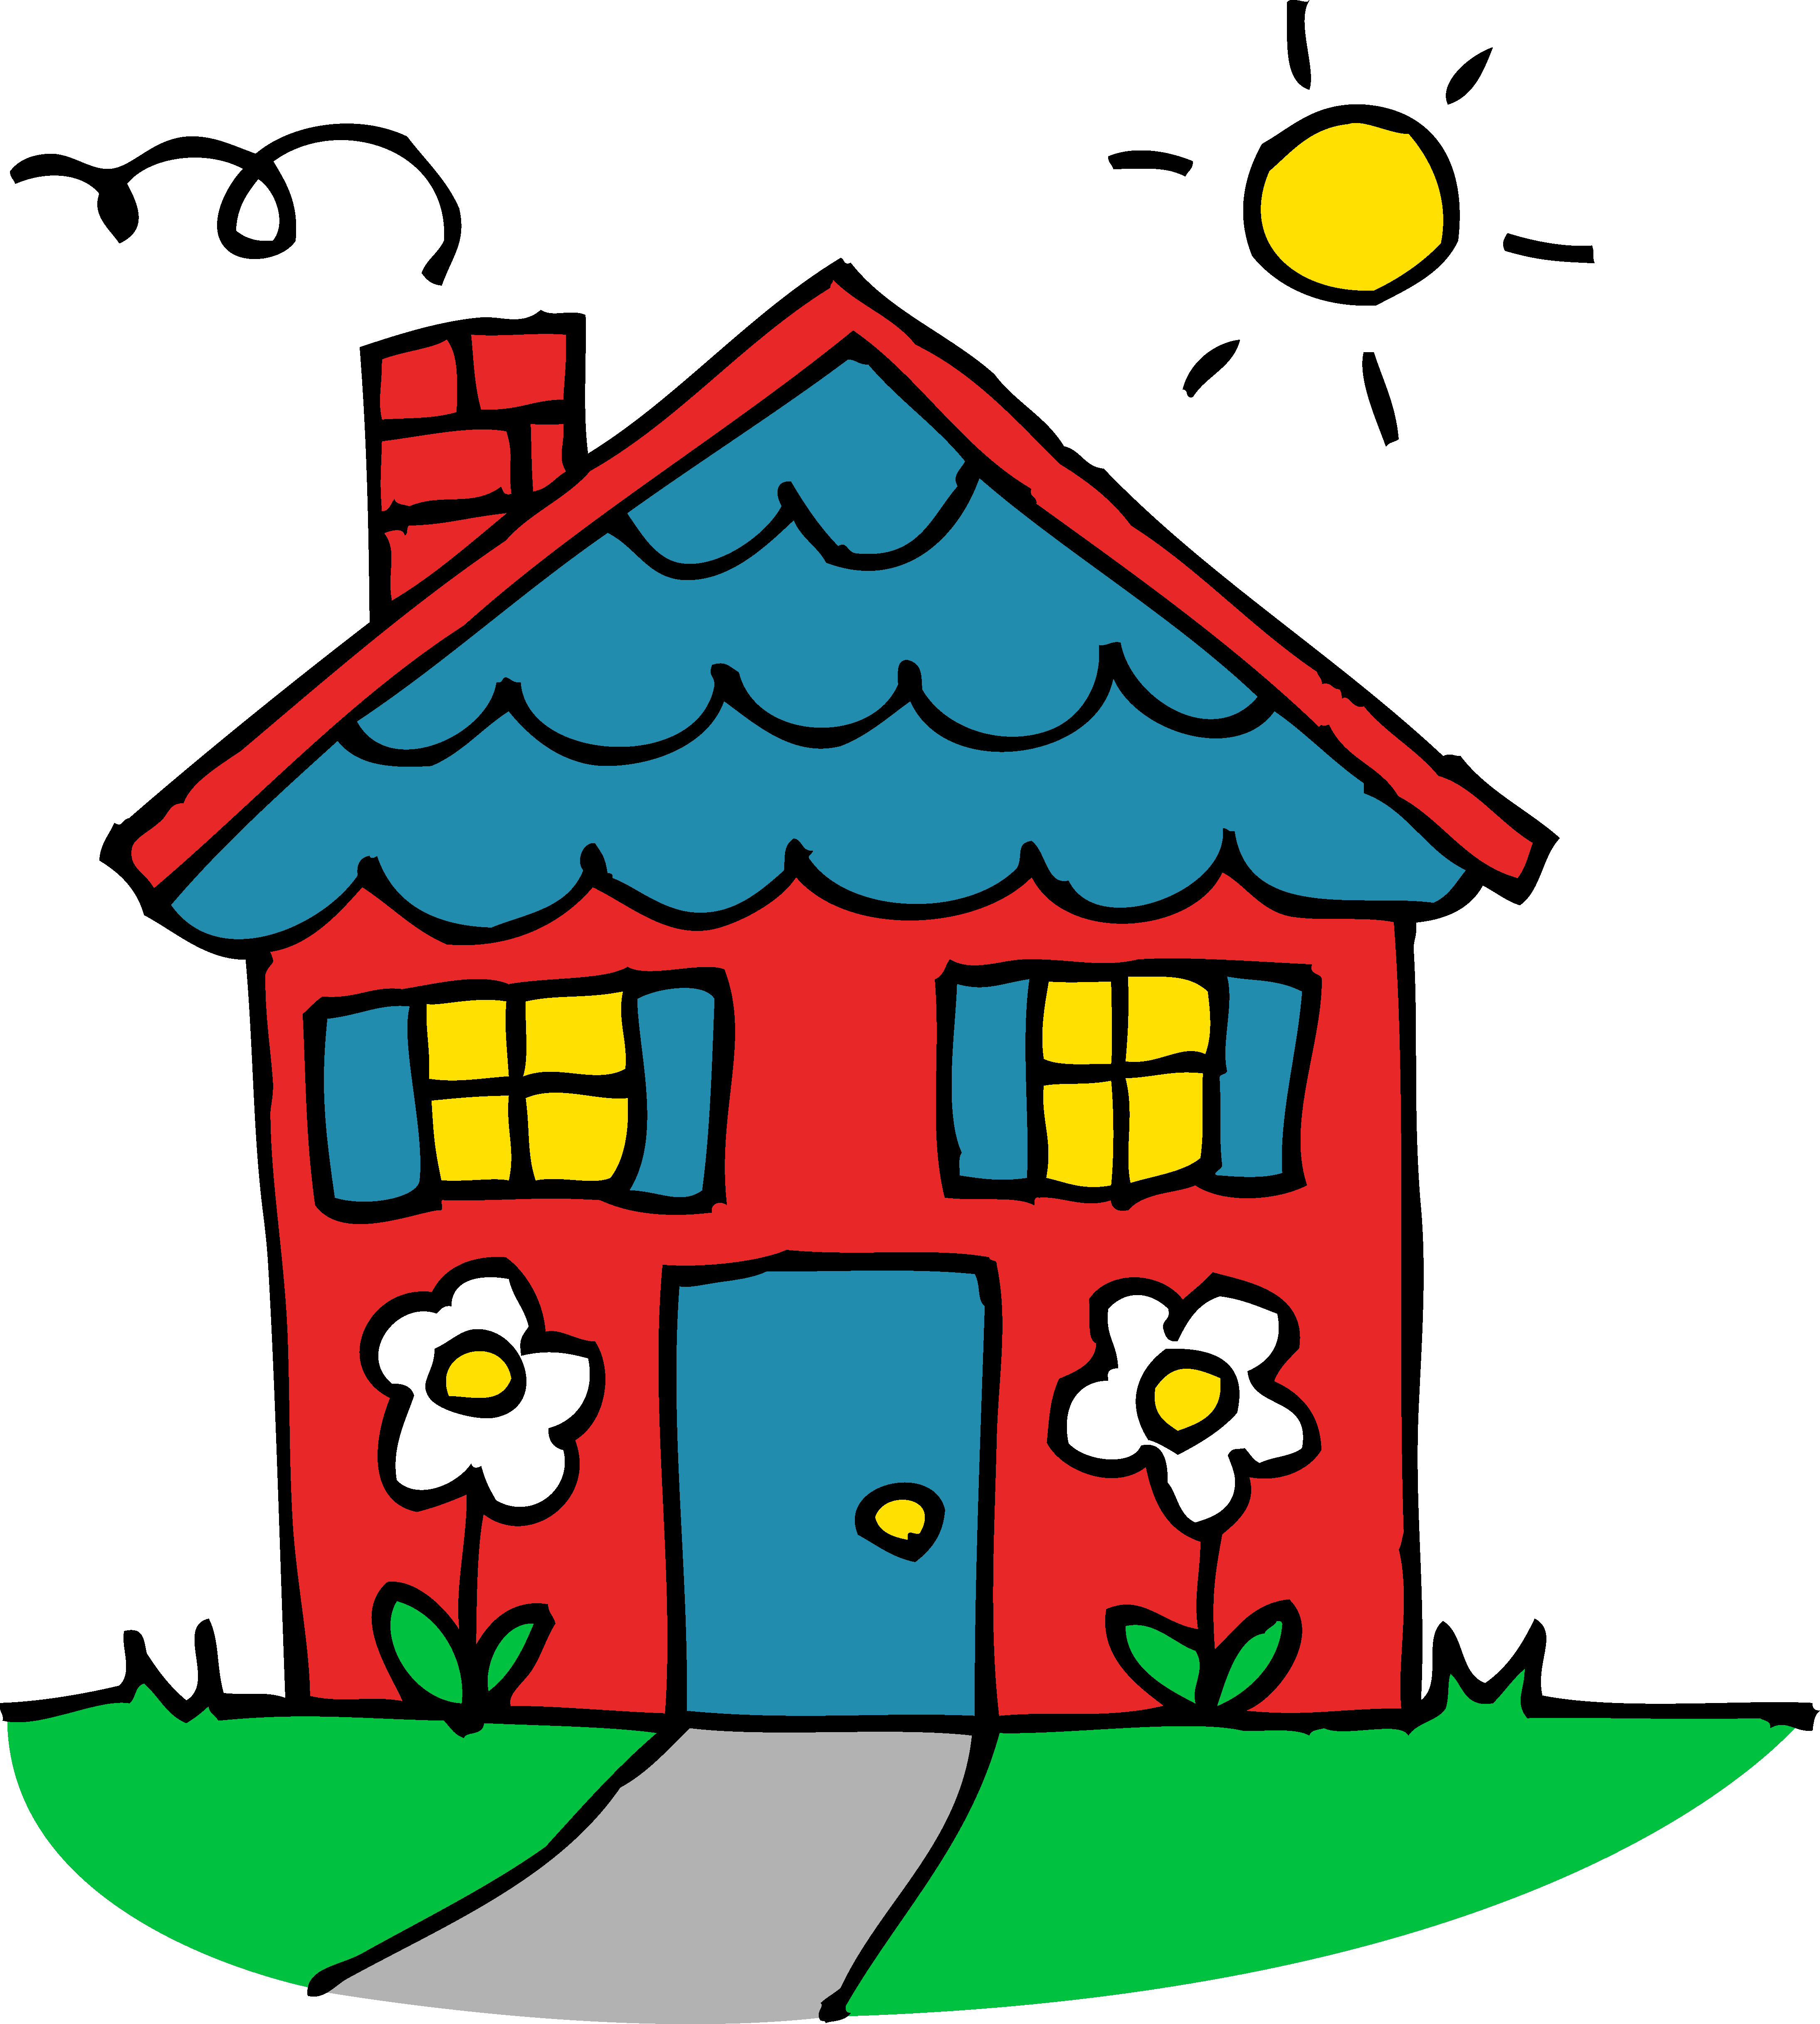 House For Sale Clip Art - Free Clipart Images